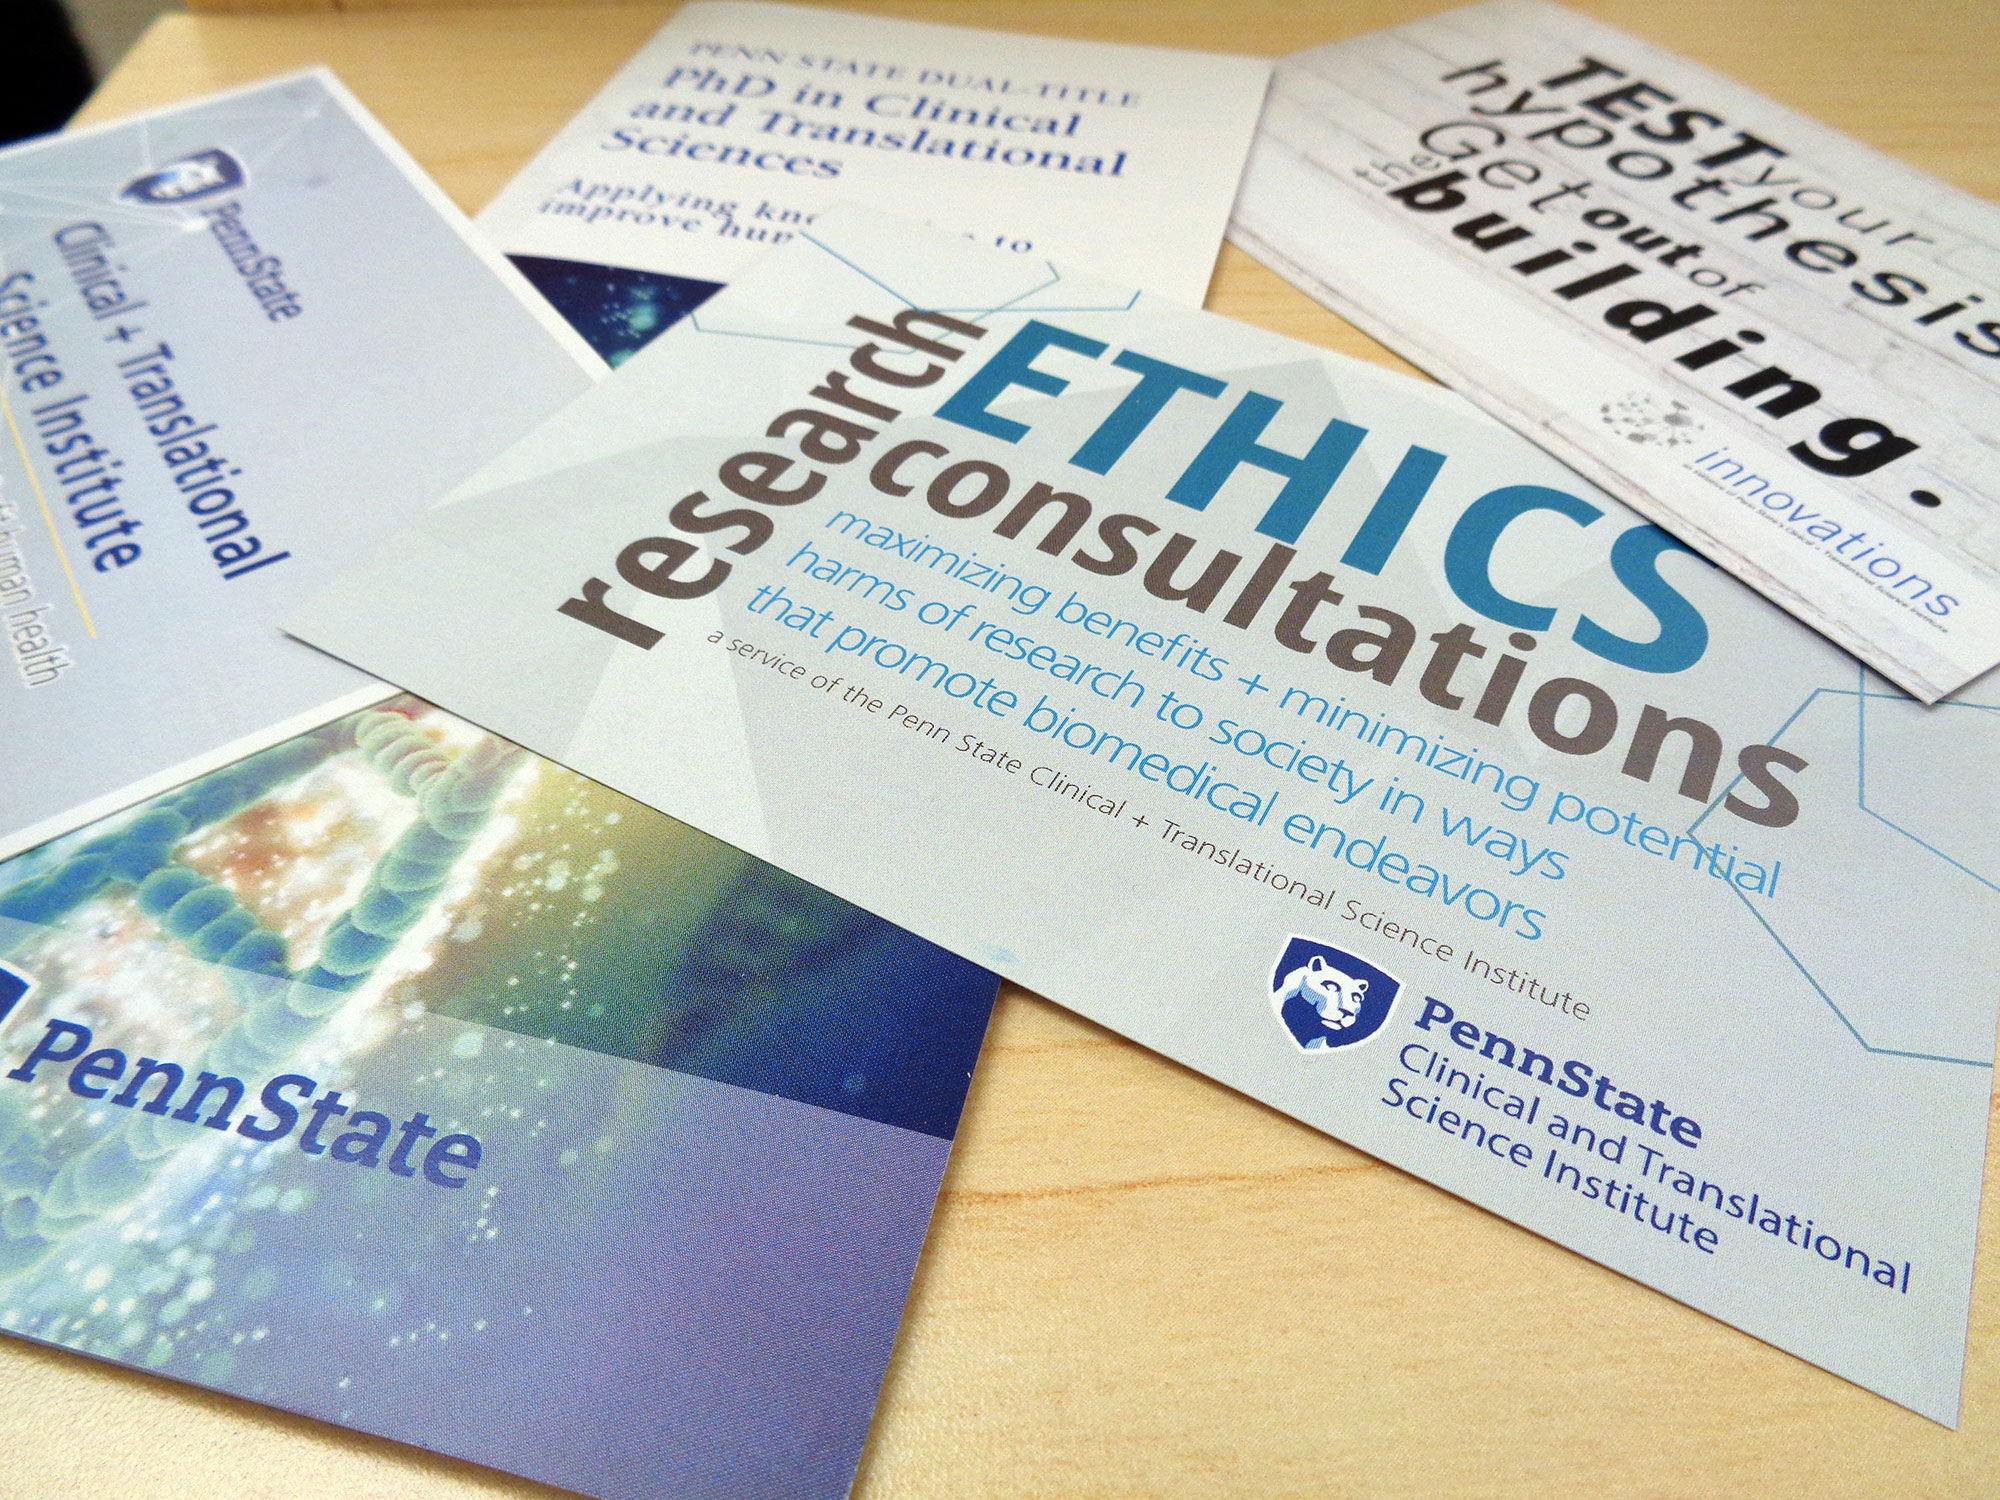 A promotional image for Penn State Clinical and Translational Science Institute shows a number of pamplets and cards advertising CTSI services fanned out on a table. The words